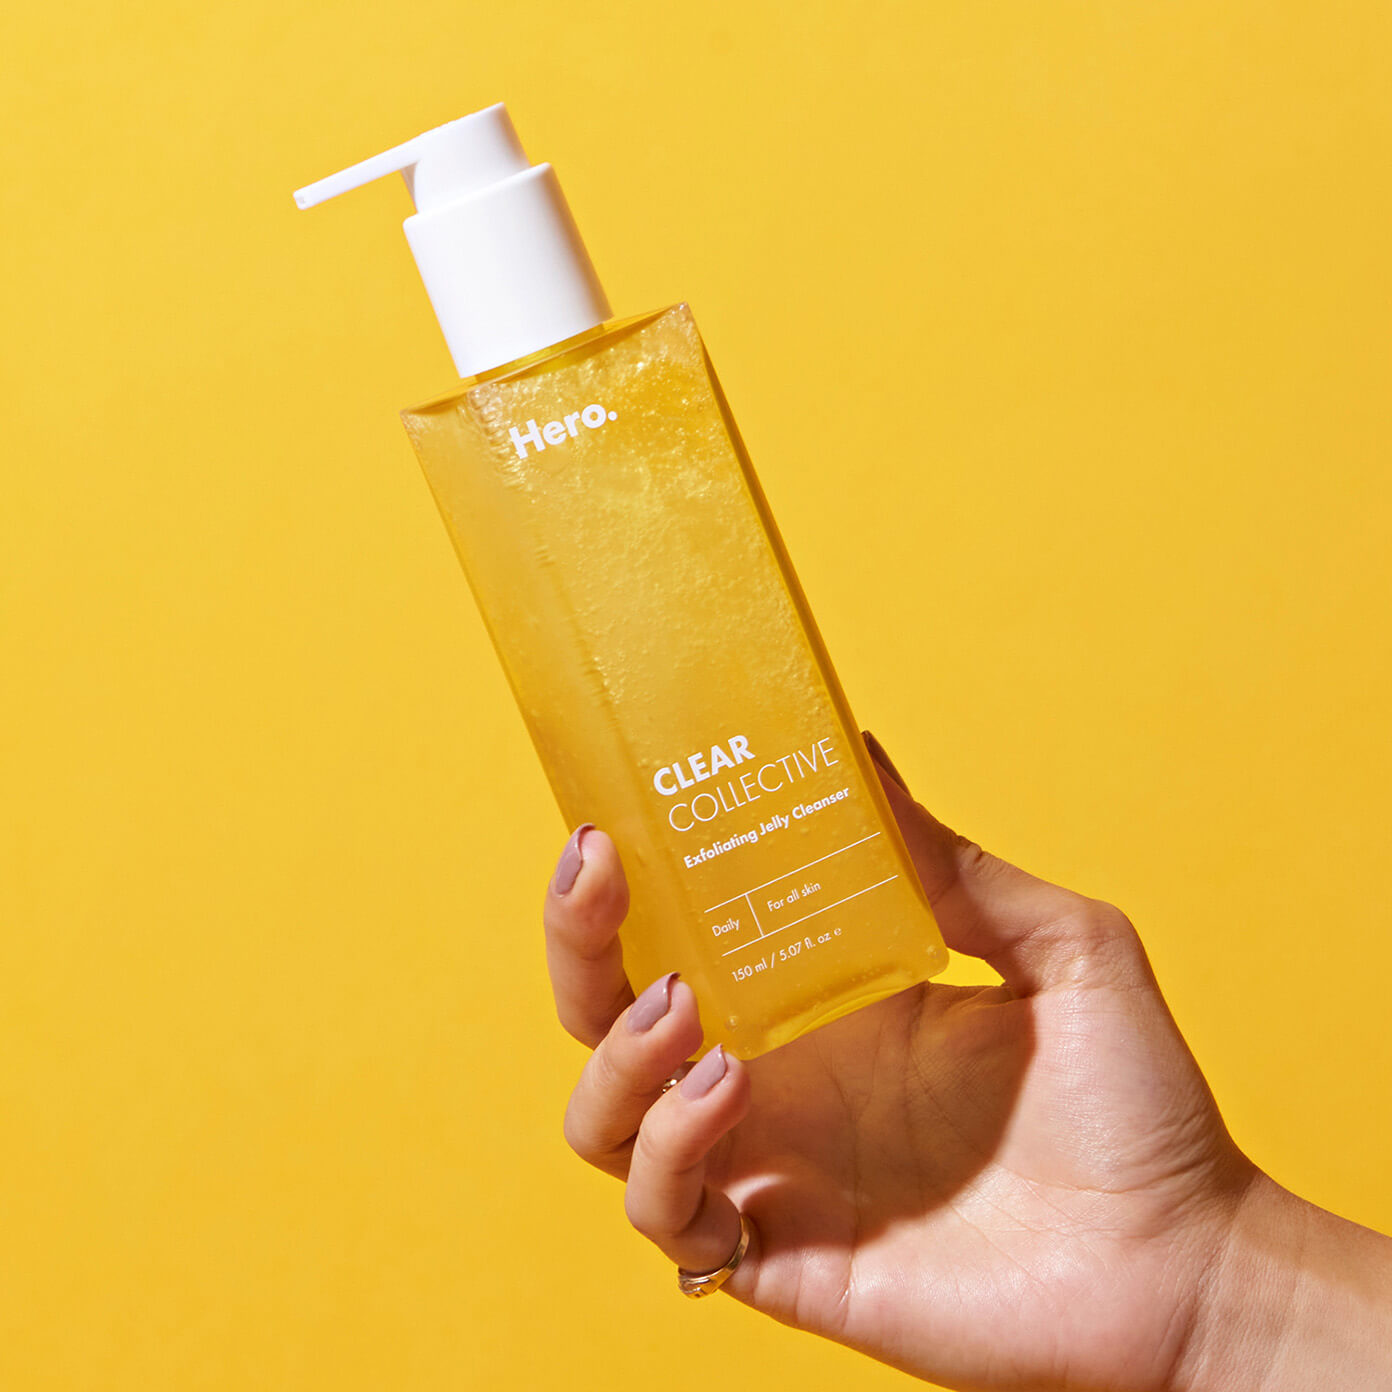 Hand holding the Clear Collective Exfoliating Jelly Cleanser